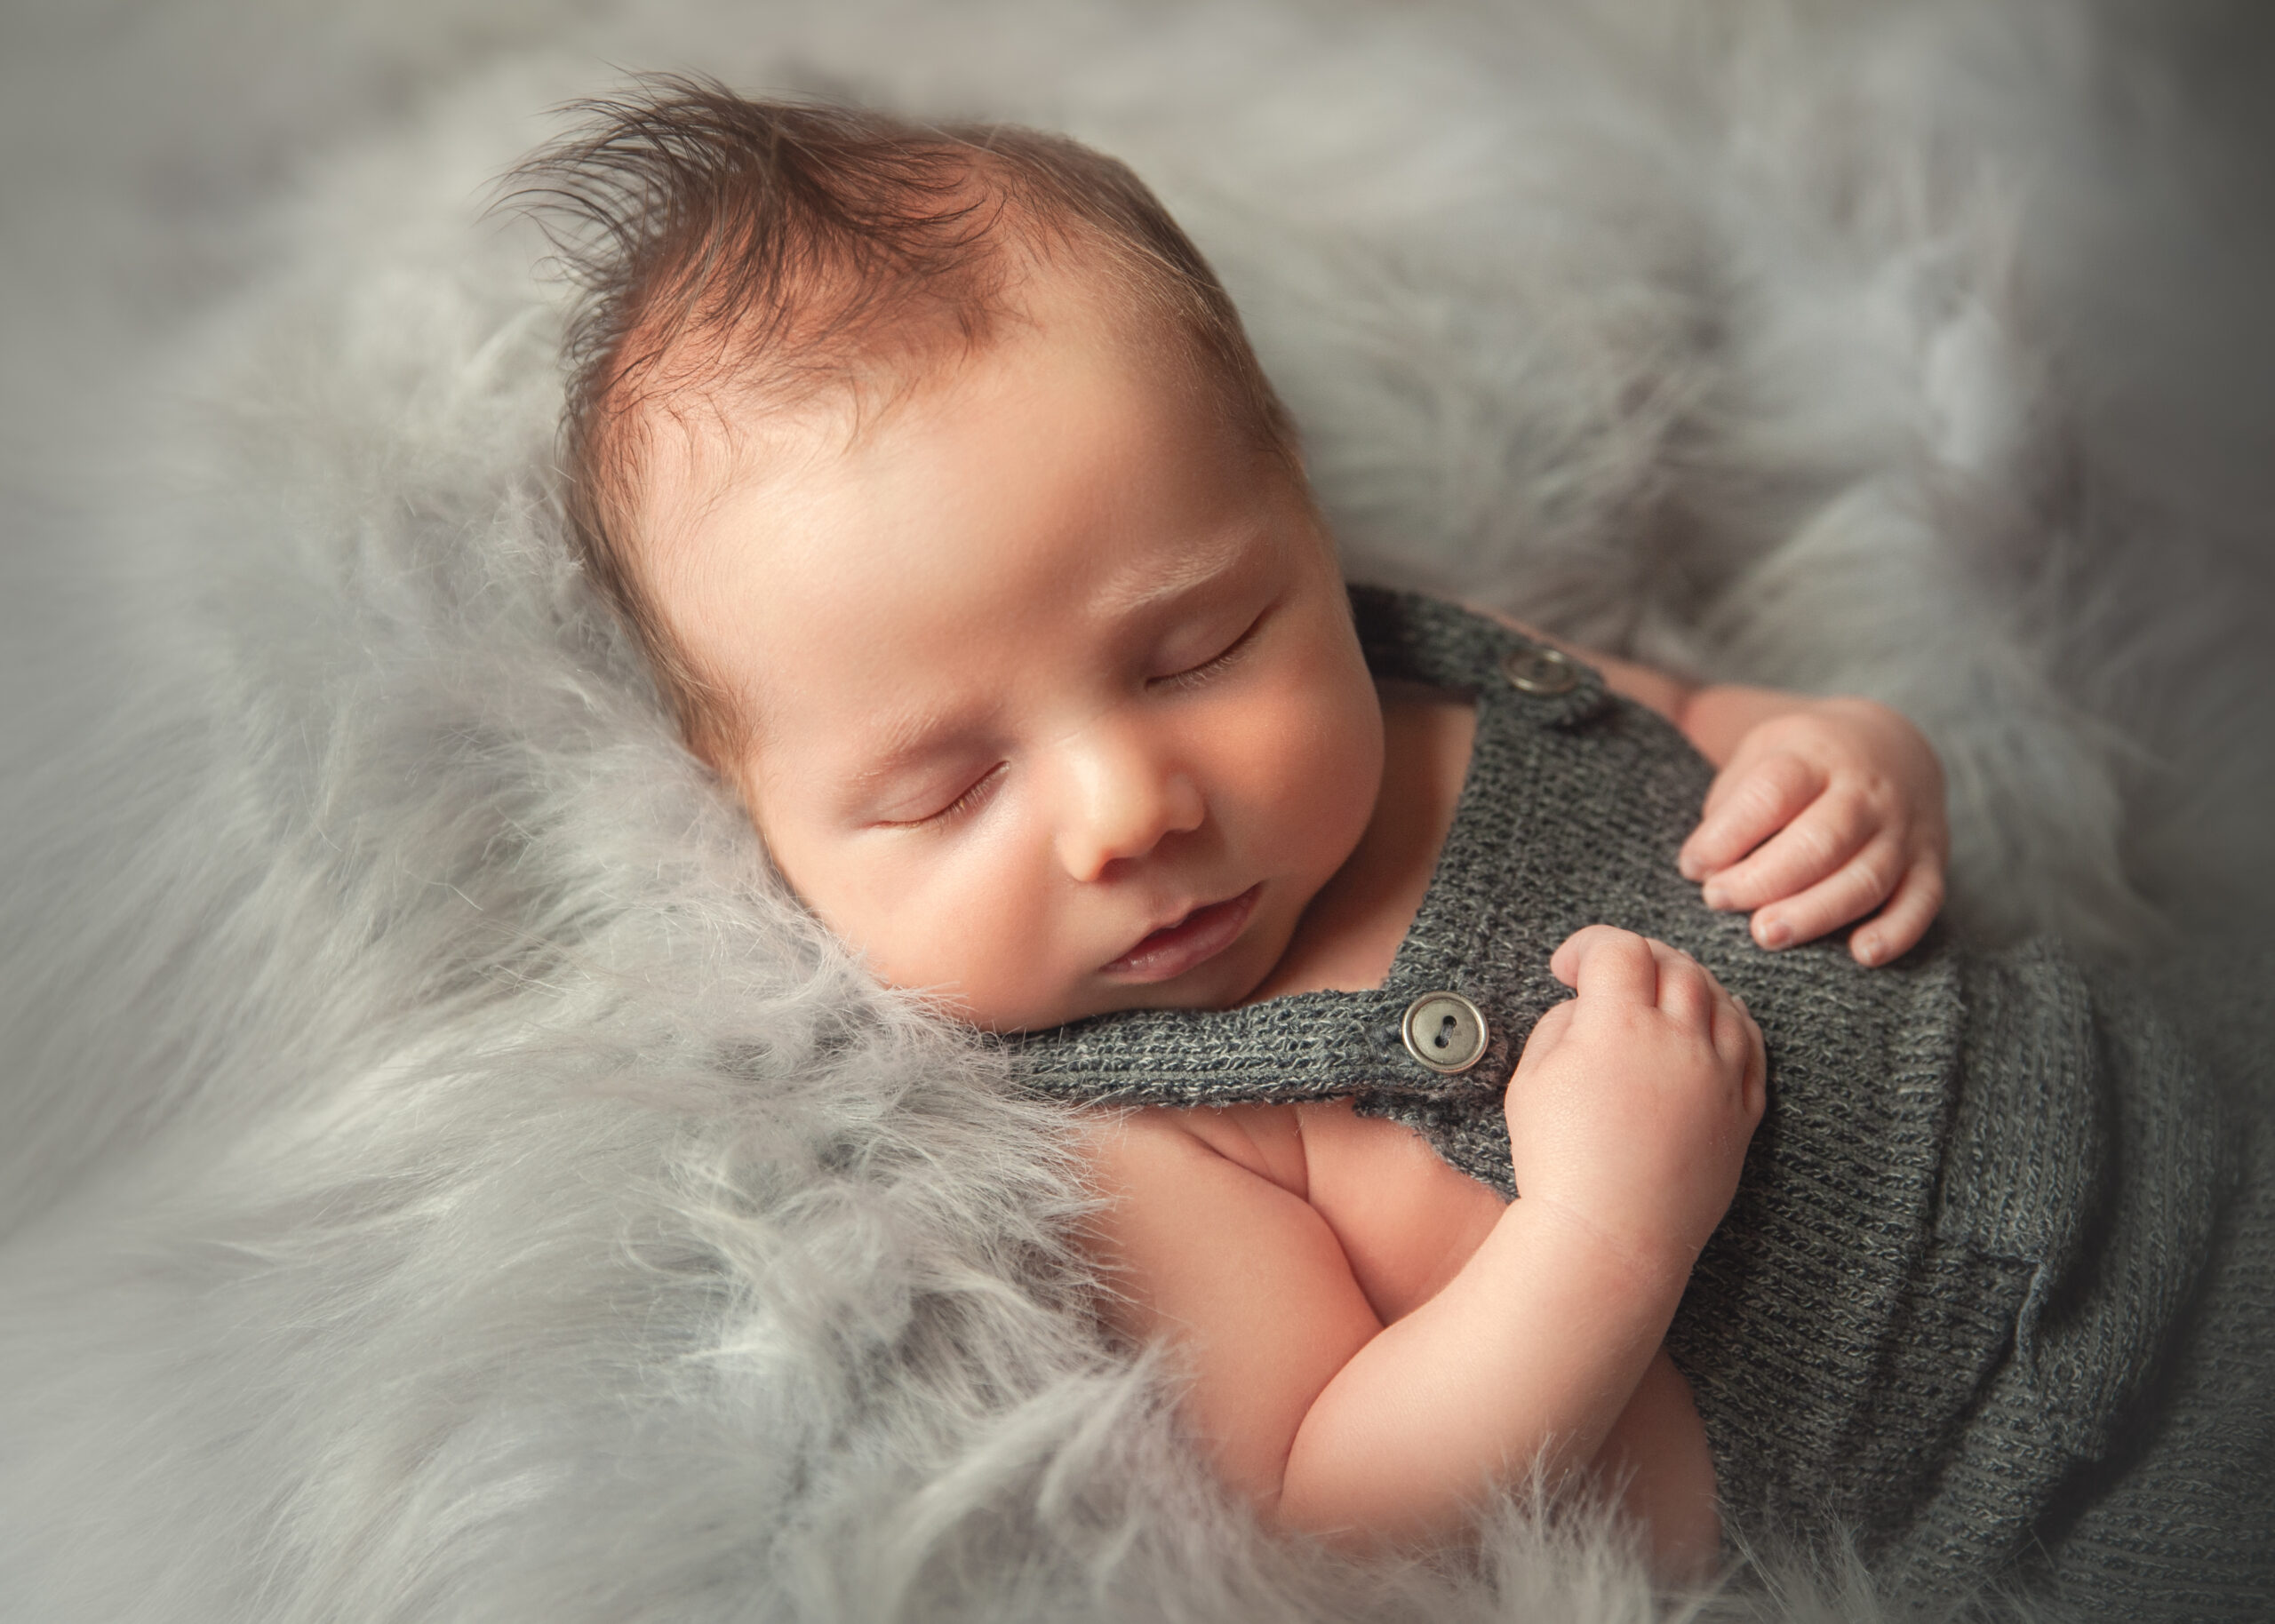 newborn photography, newborn photographer, colorado newborn photographer, colorado newborn photography